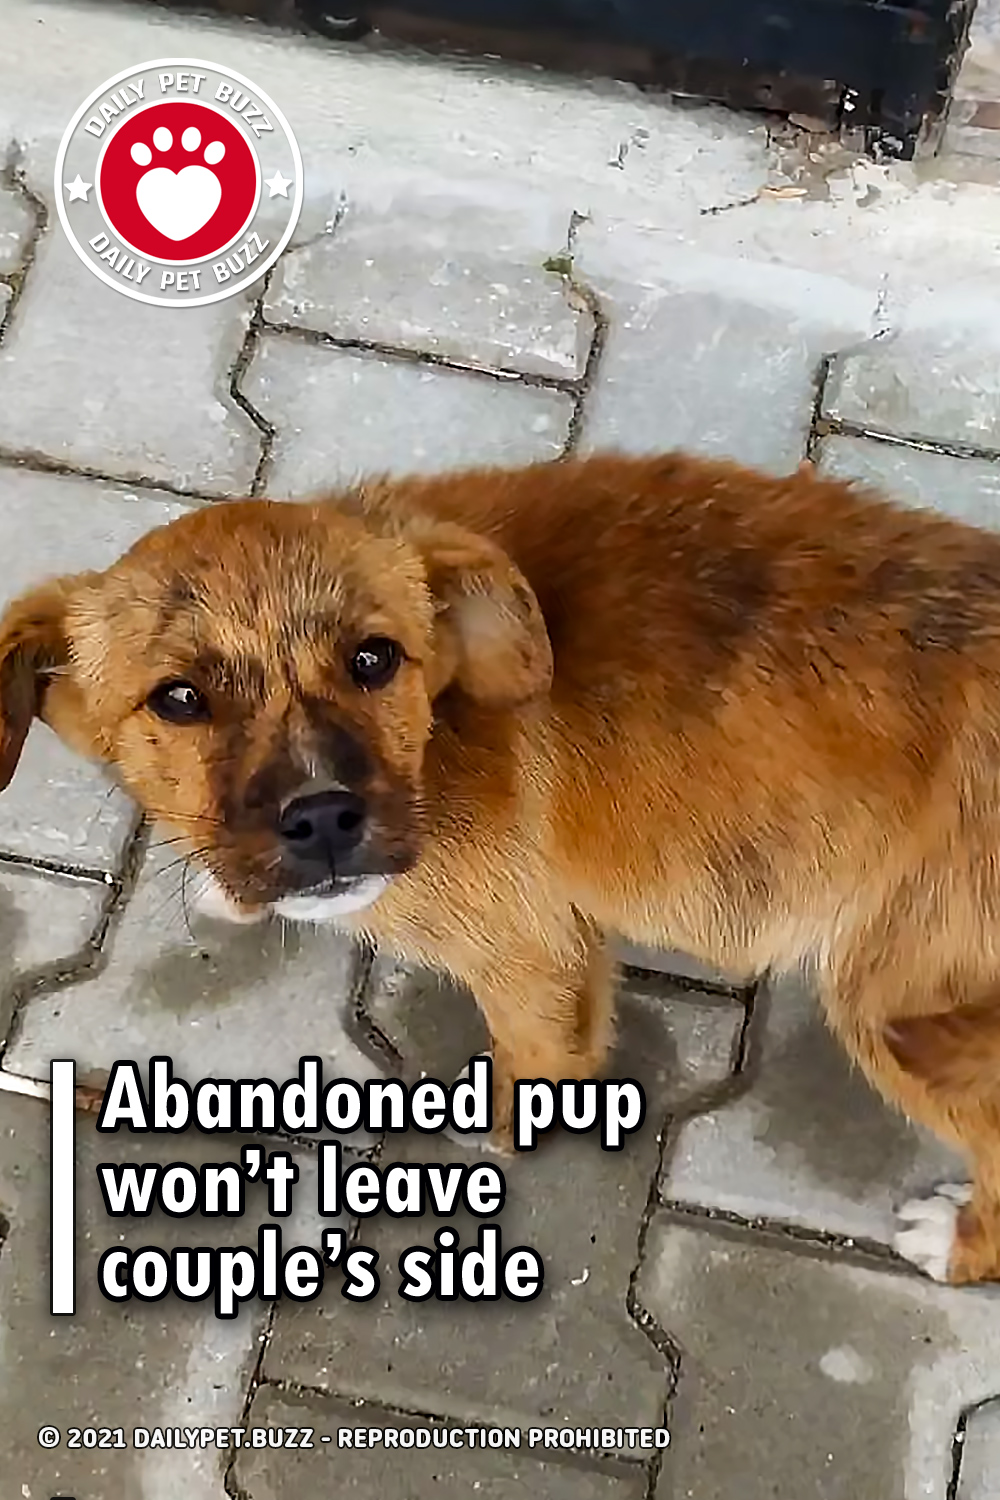 Abandoned pup won't leave couple's side